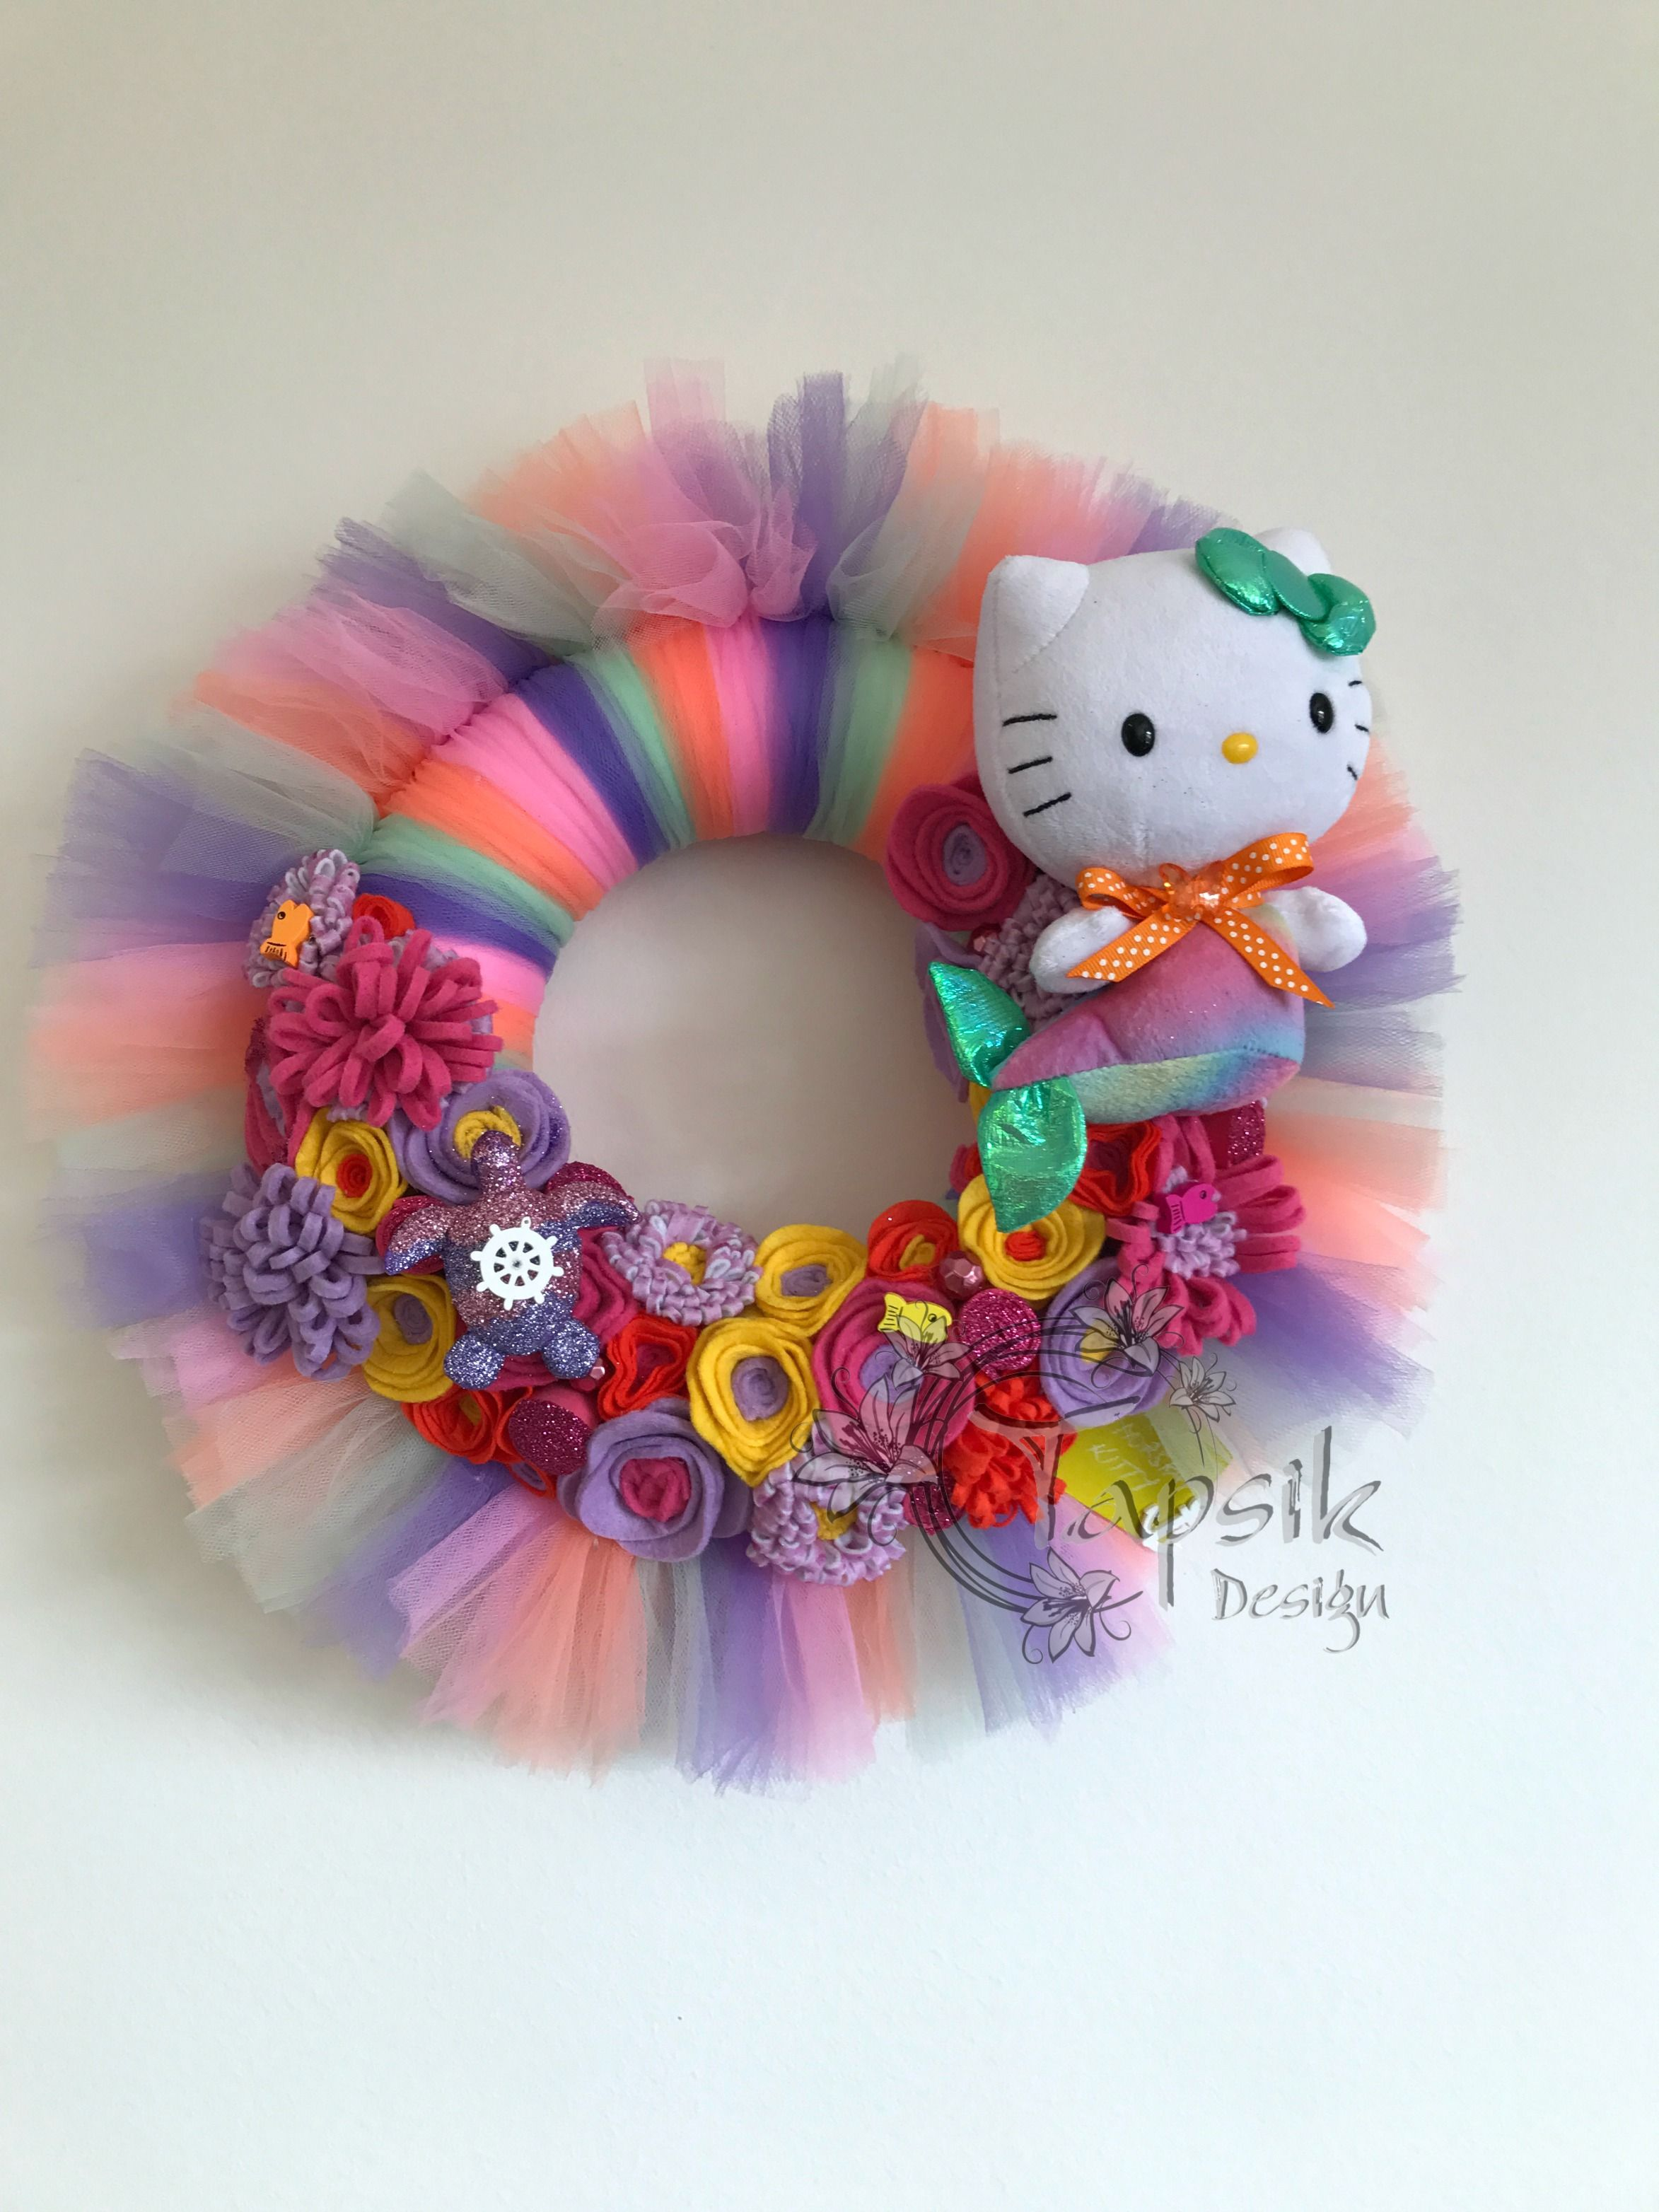 So the Kitty Giveaway Marathon continues. And here is the next wreath. Colorfull, with handmade felt flowers, little board, small wooden fishes and turttle. And of course Kitty. Around up to 38 cm.